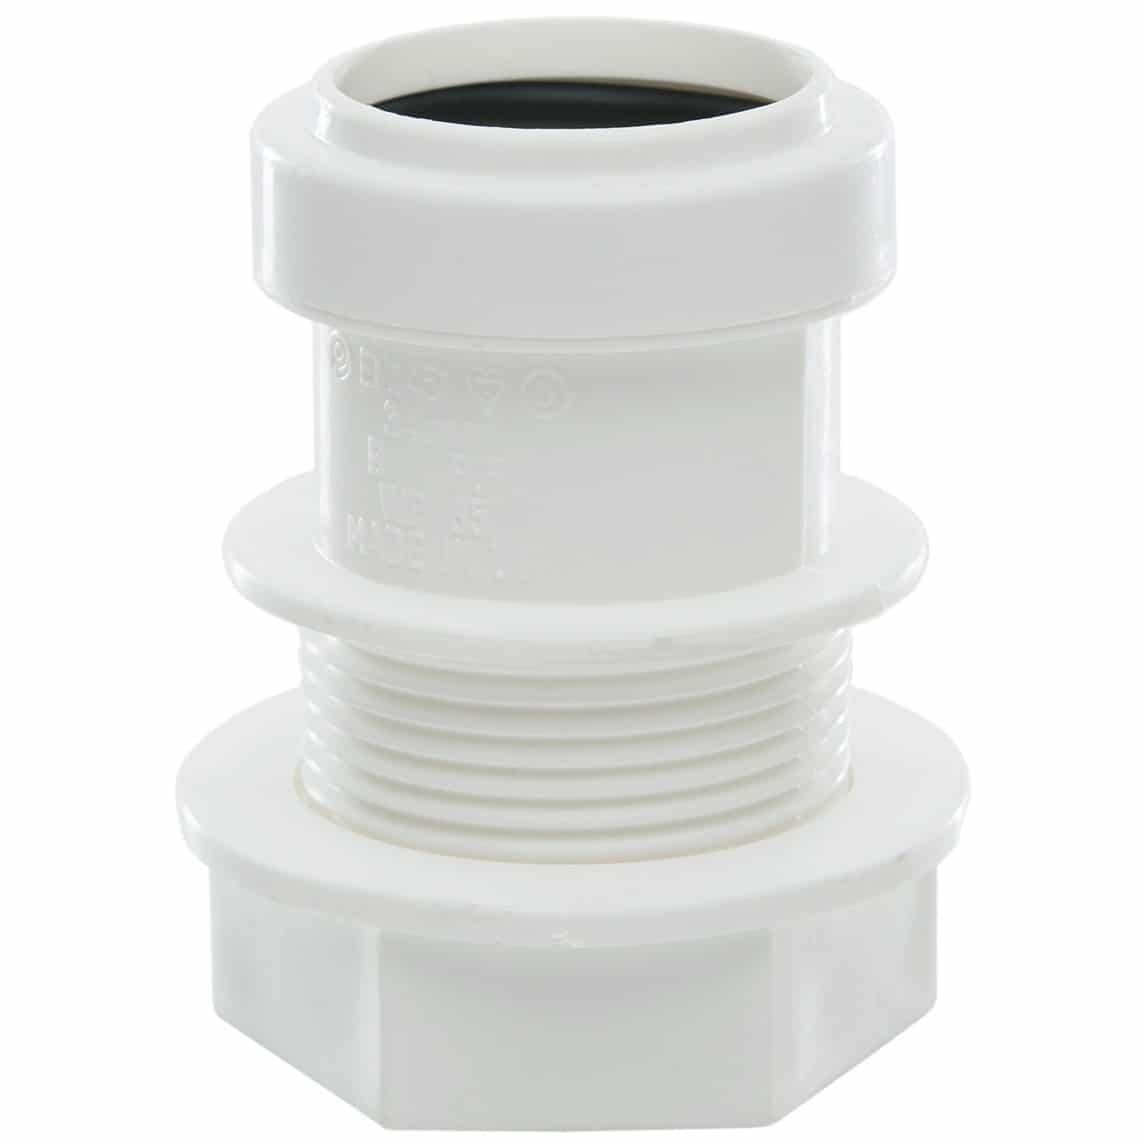 Push Fit Waste Tank Connector 32/40mm